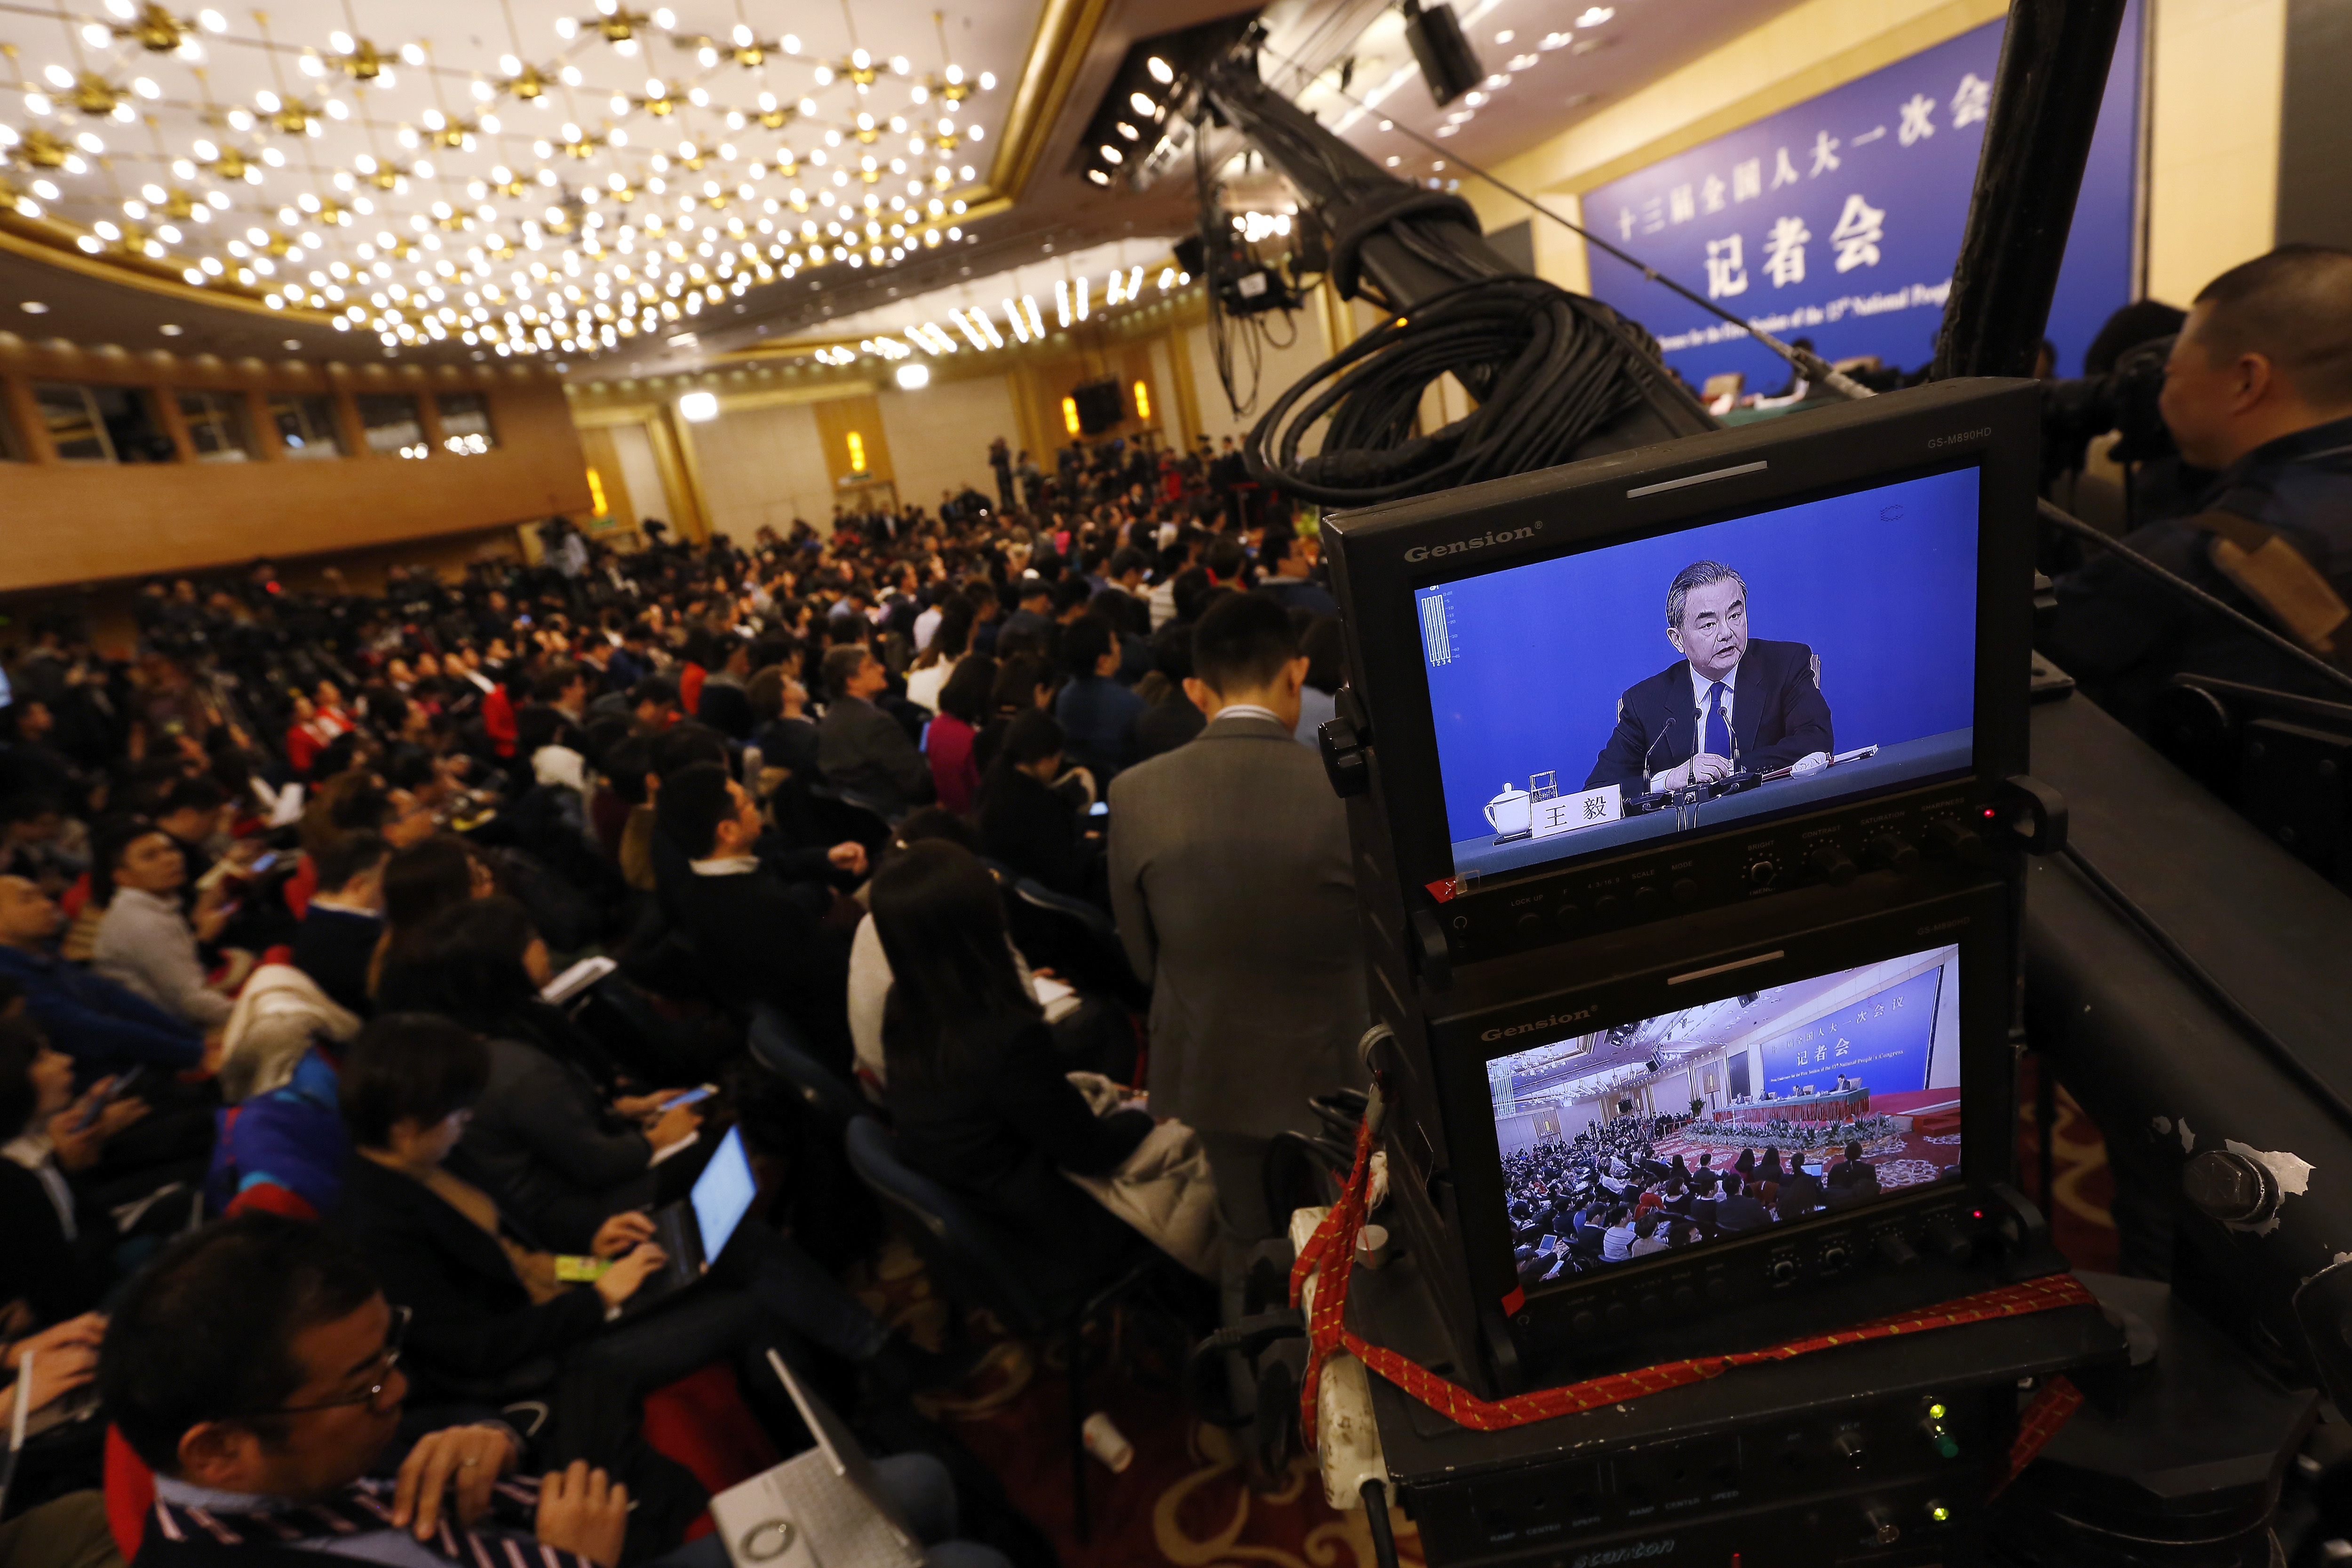 A camera screen shows China's Foreign Minister Wang Yi speaking during a press conference on the sidelines of the National People's Congress at the media center in Beijing, March 8, 2018.